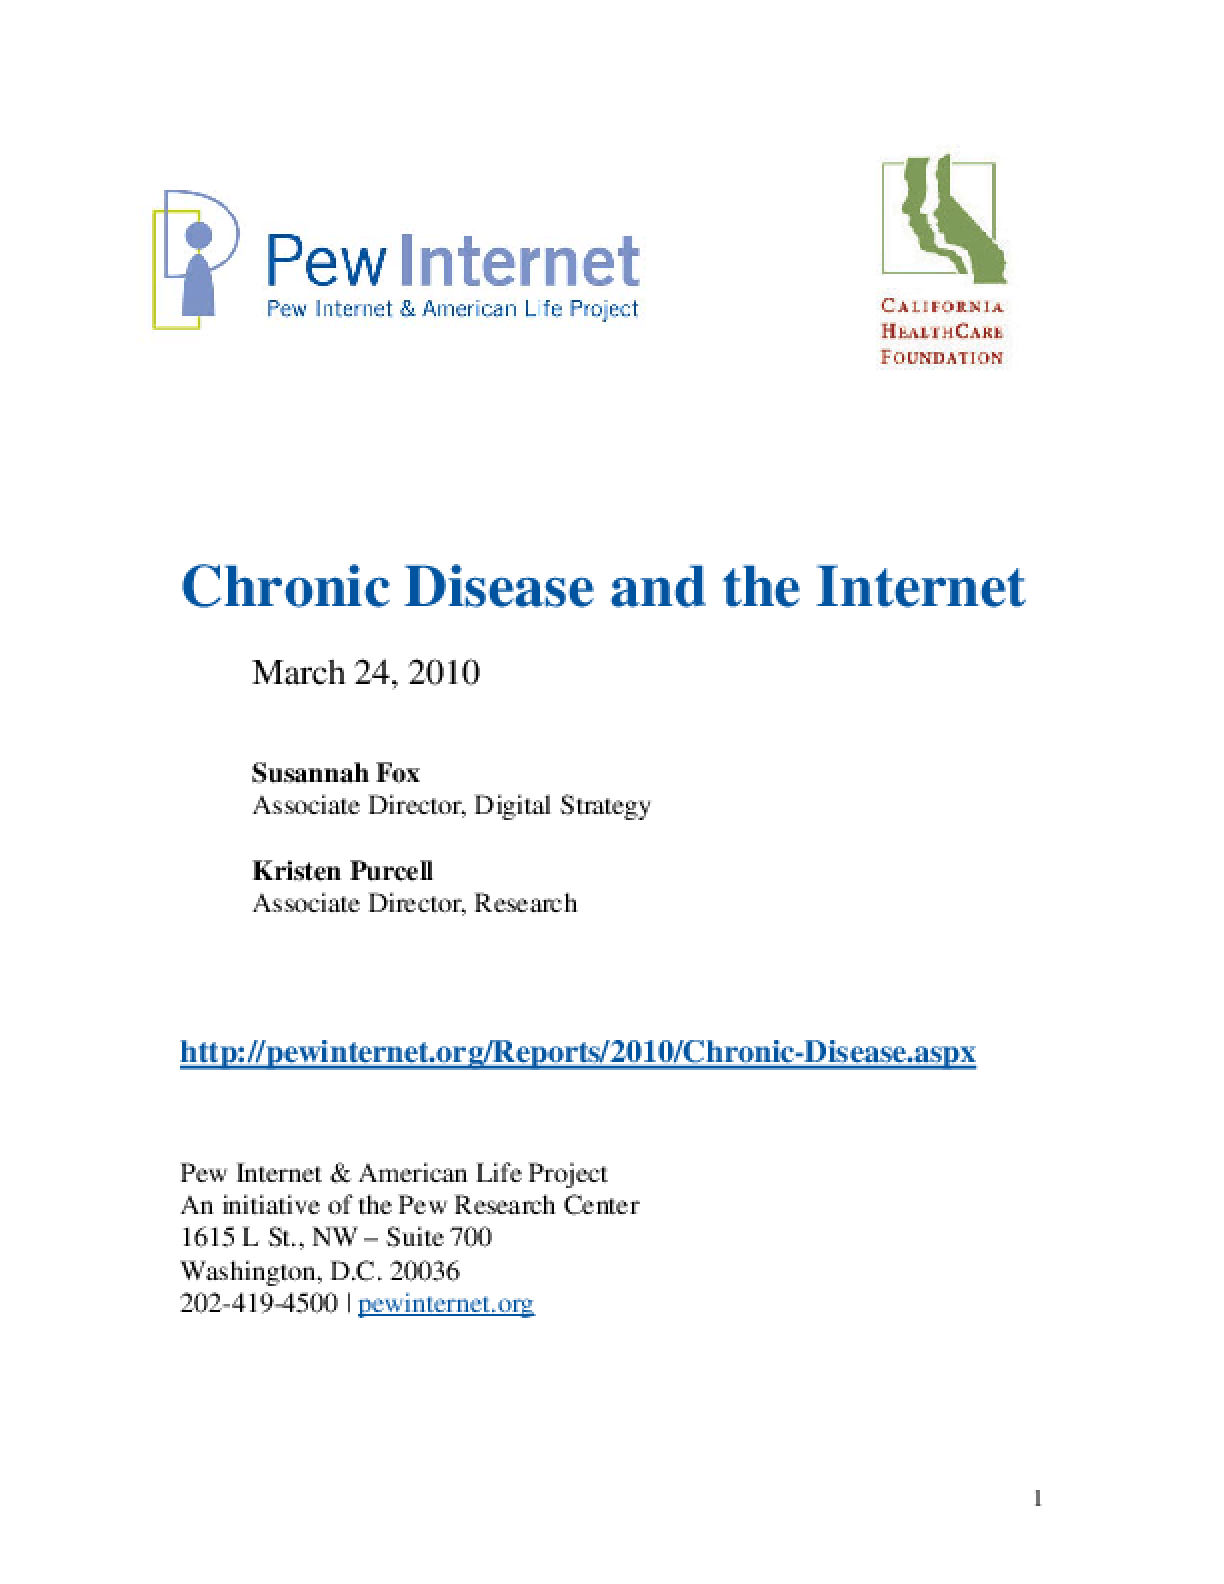 Chronic Disease and the Internet